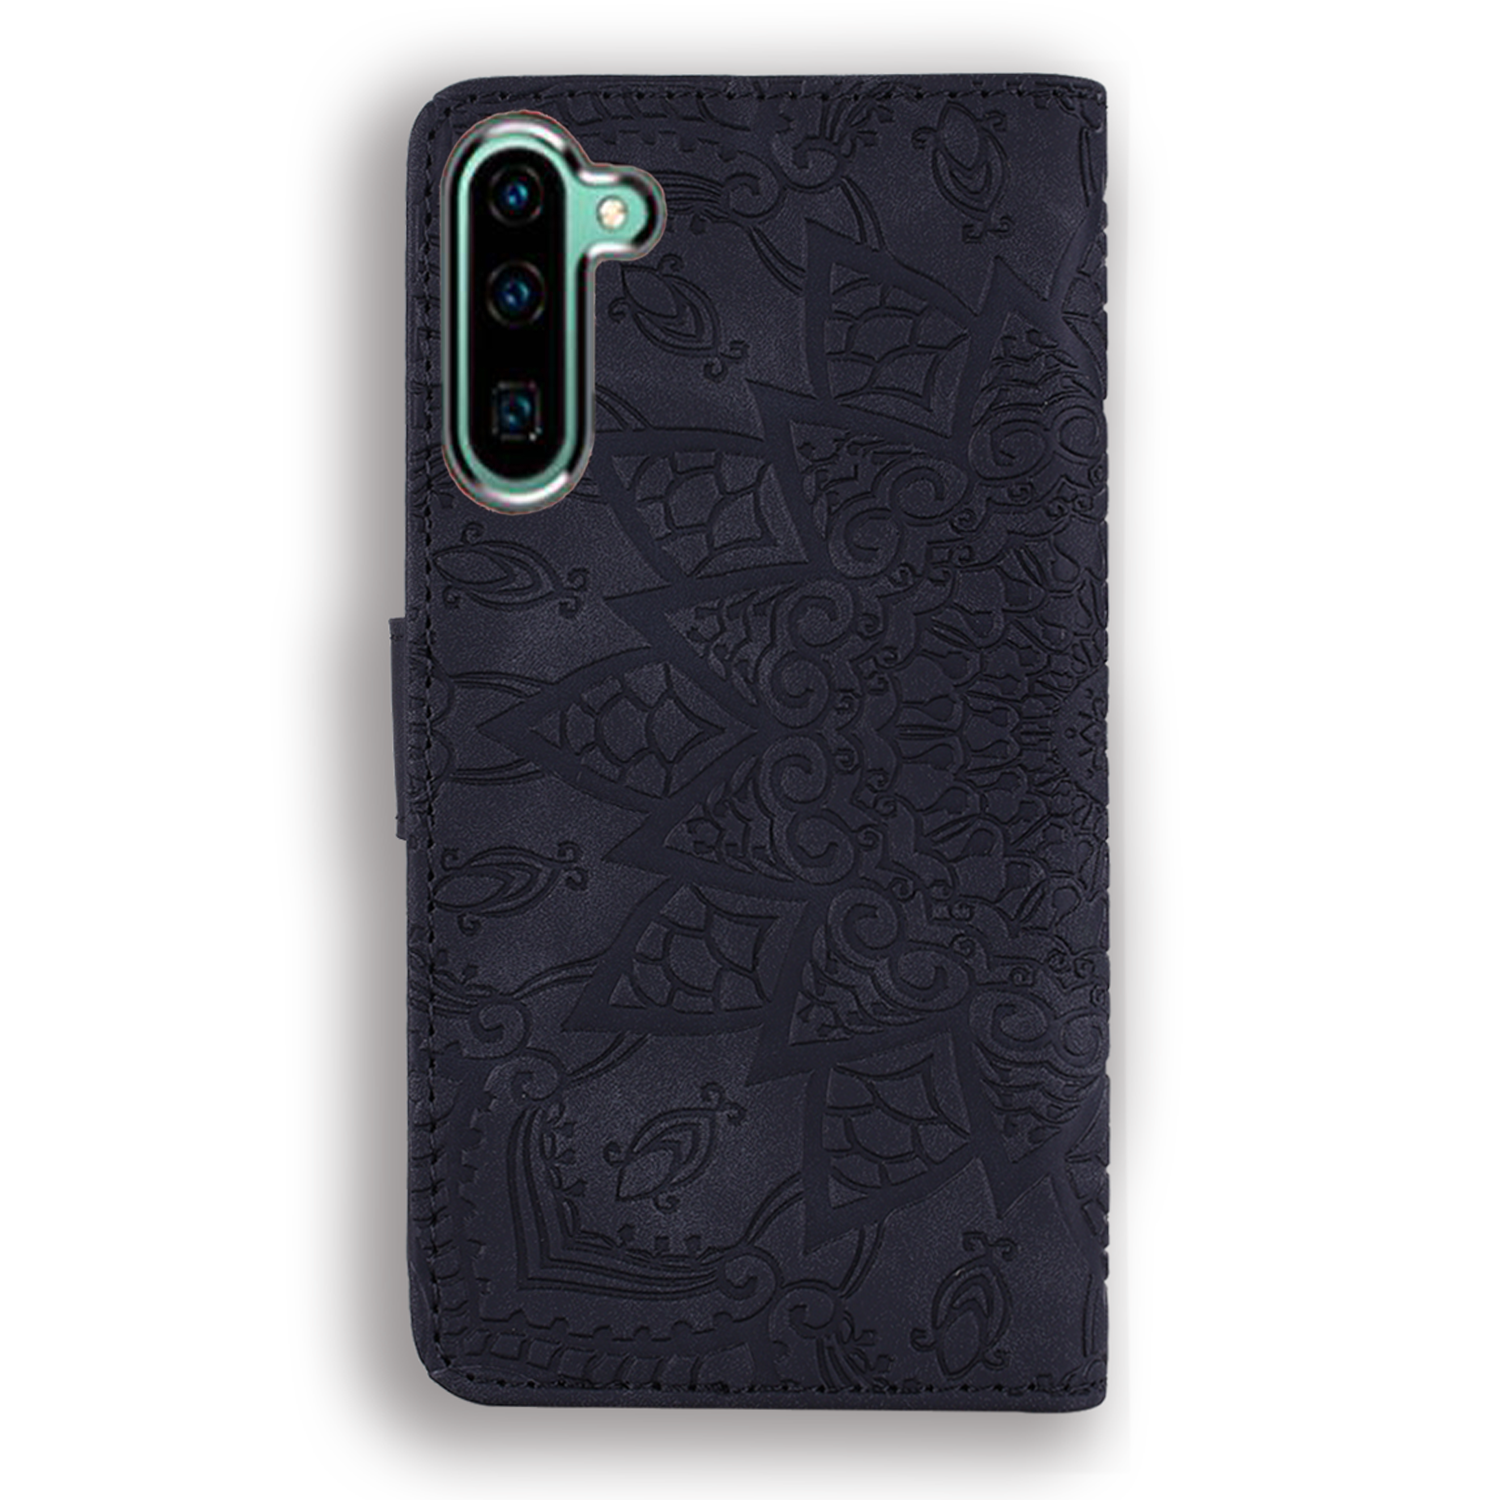 Flower Samsung Note 10 Case Samsung Note Case Phone Cases